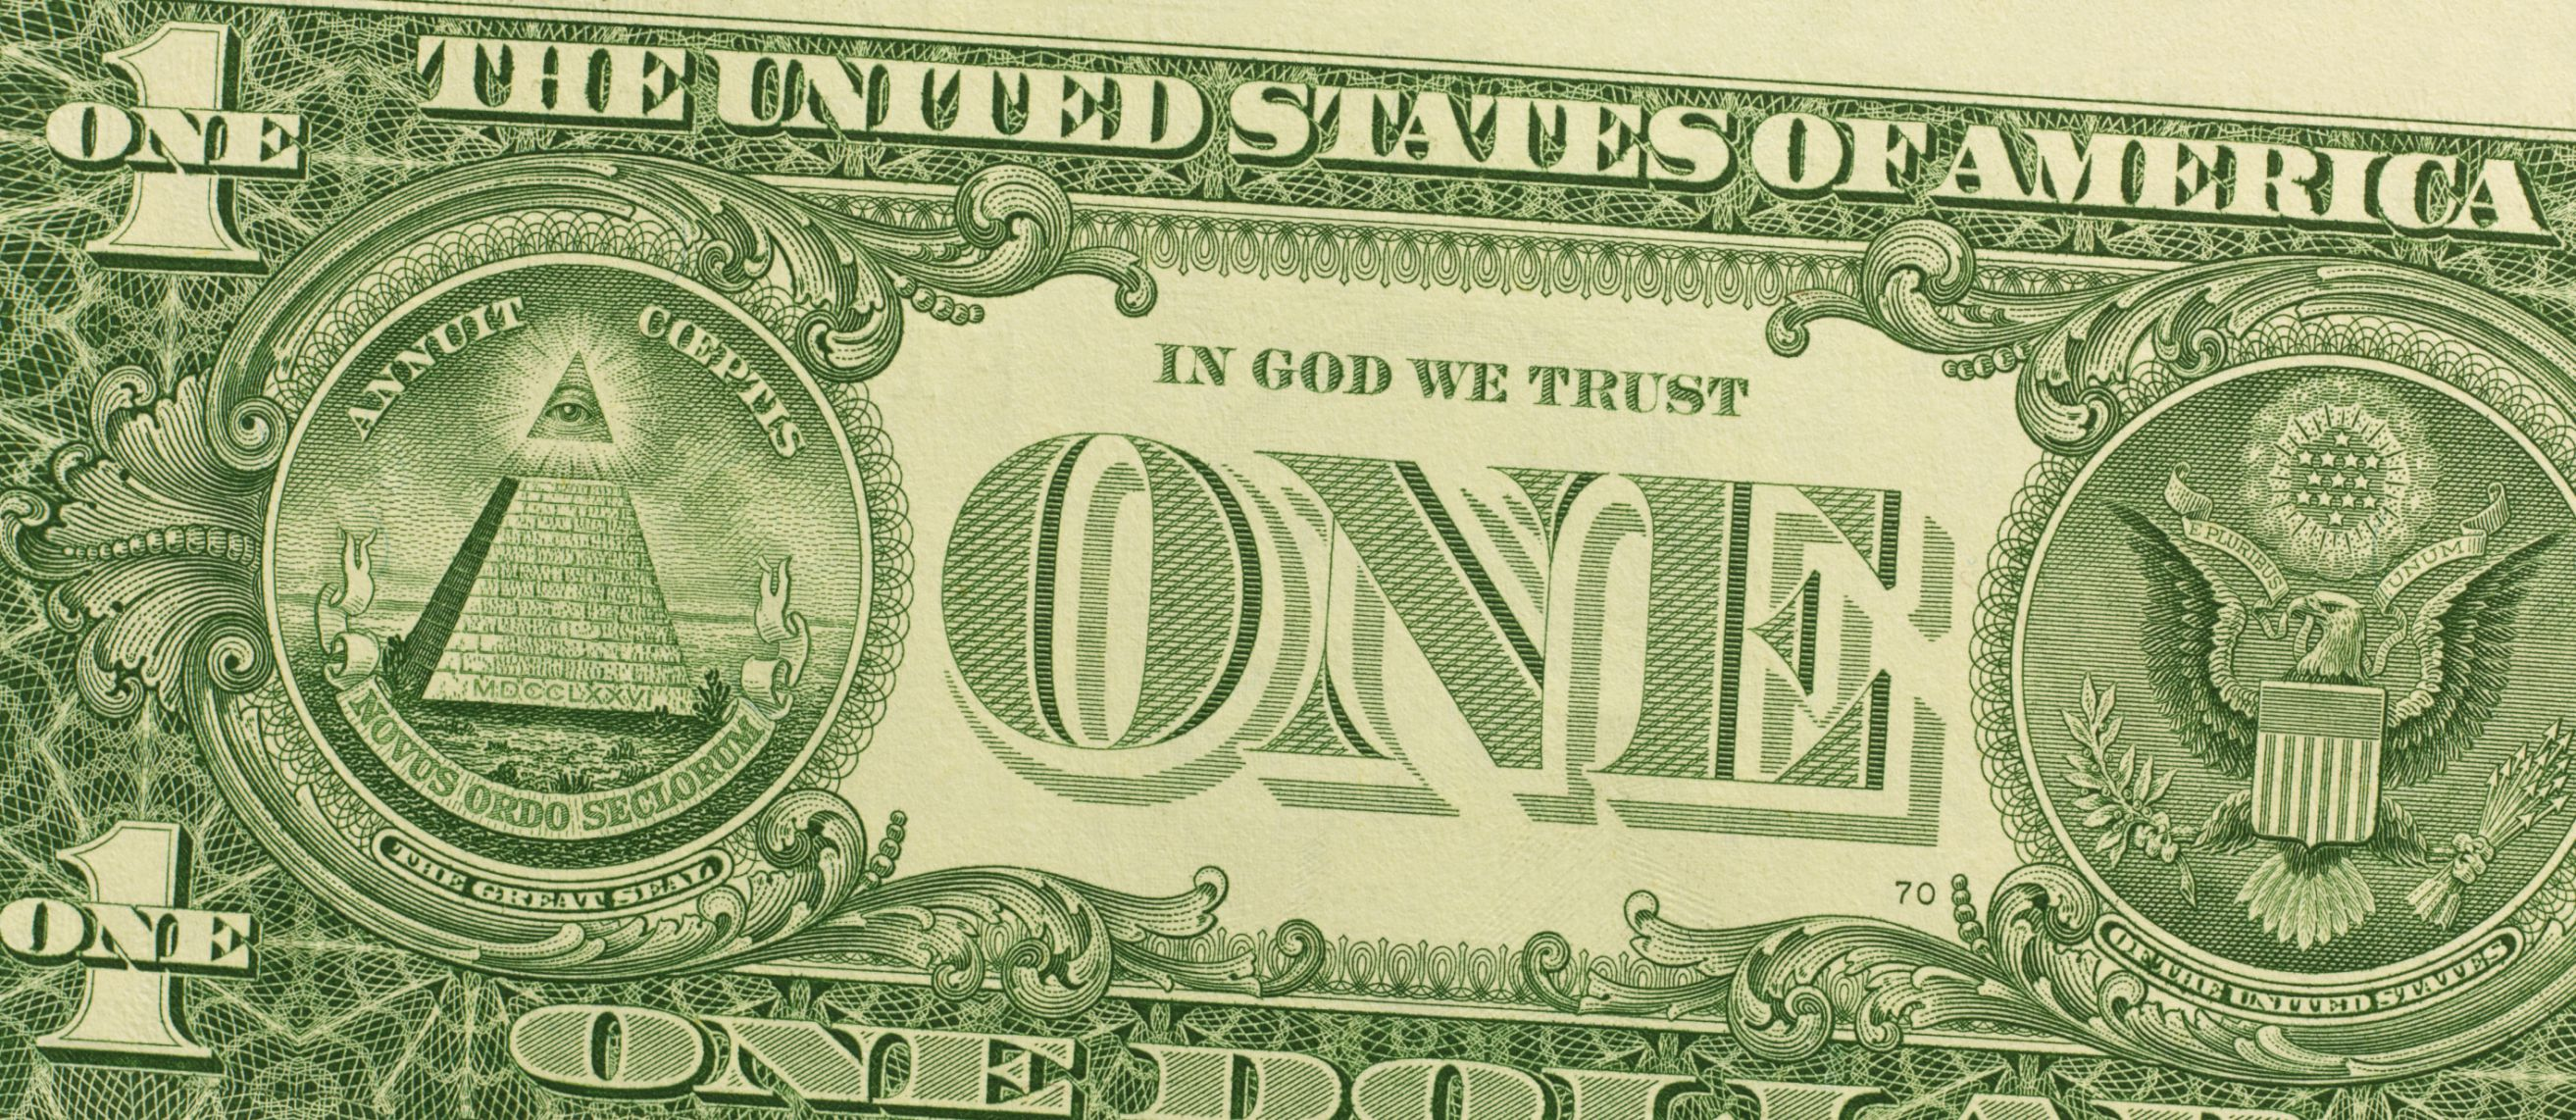 u.s. dollar: definition, symbols, denomination,currency